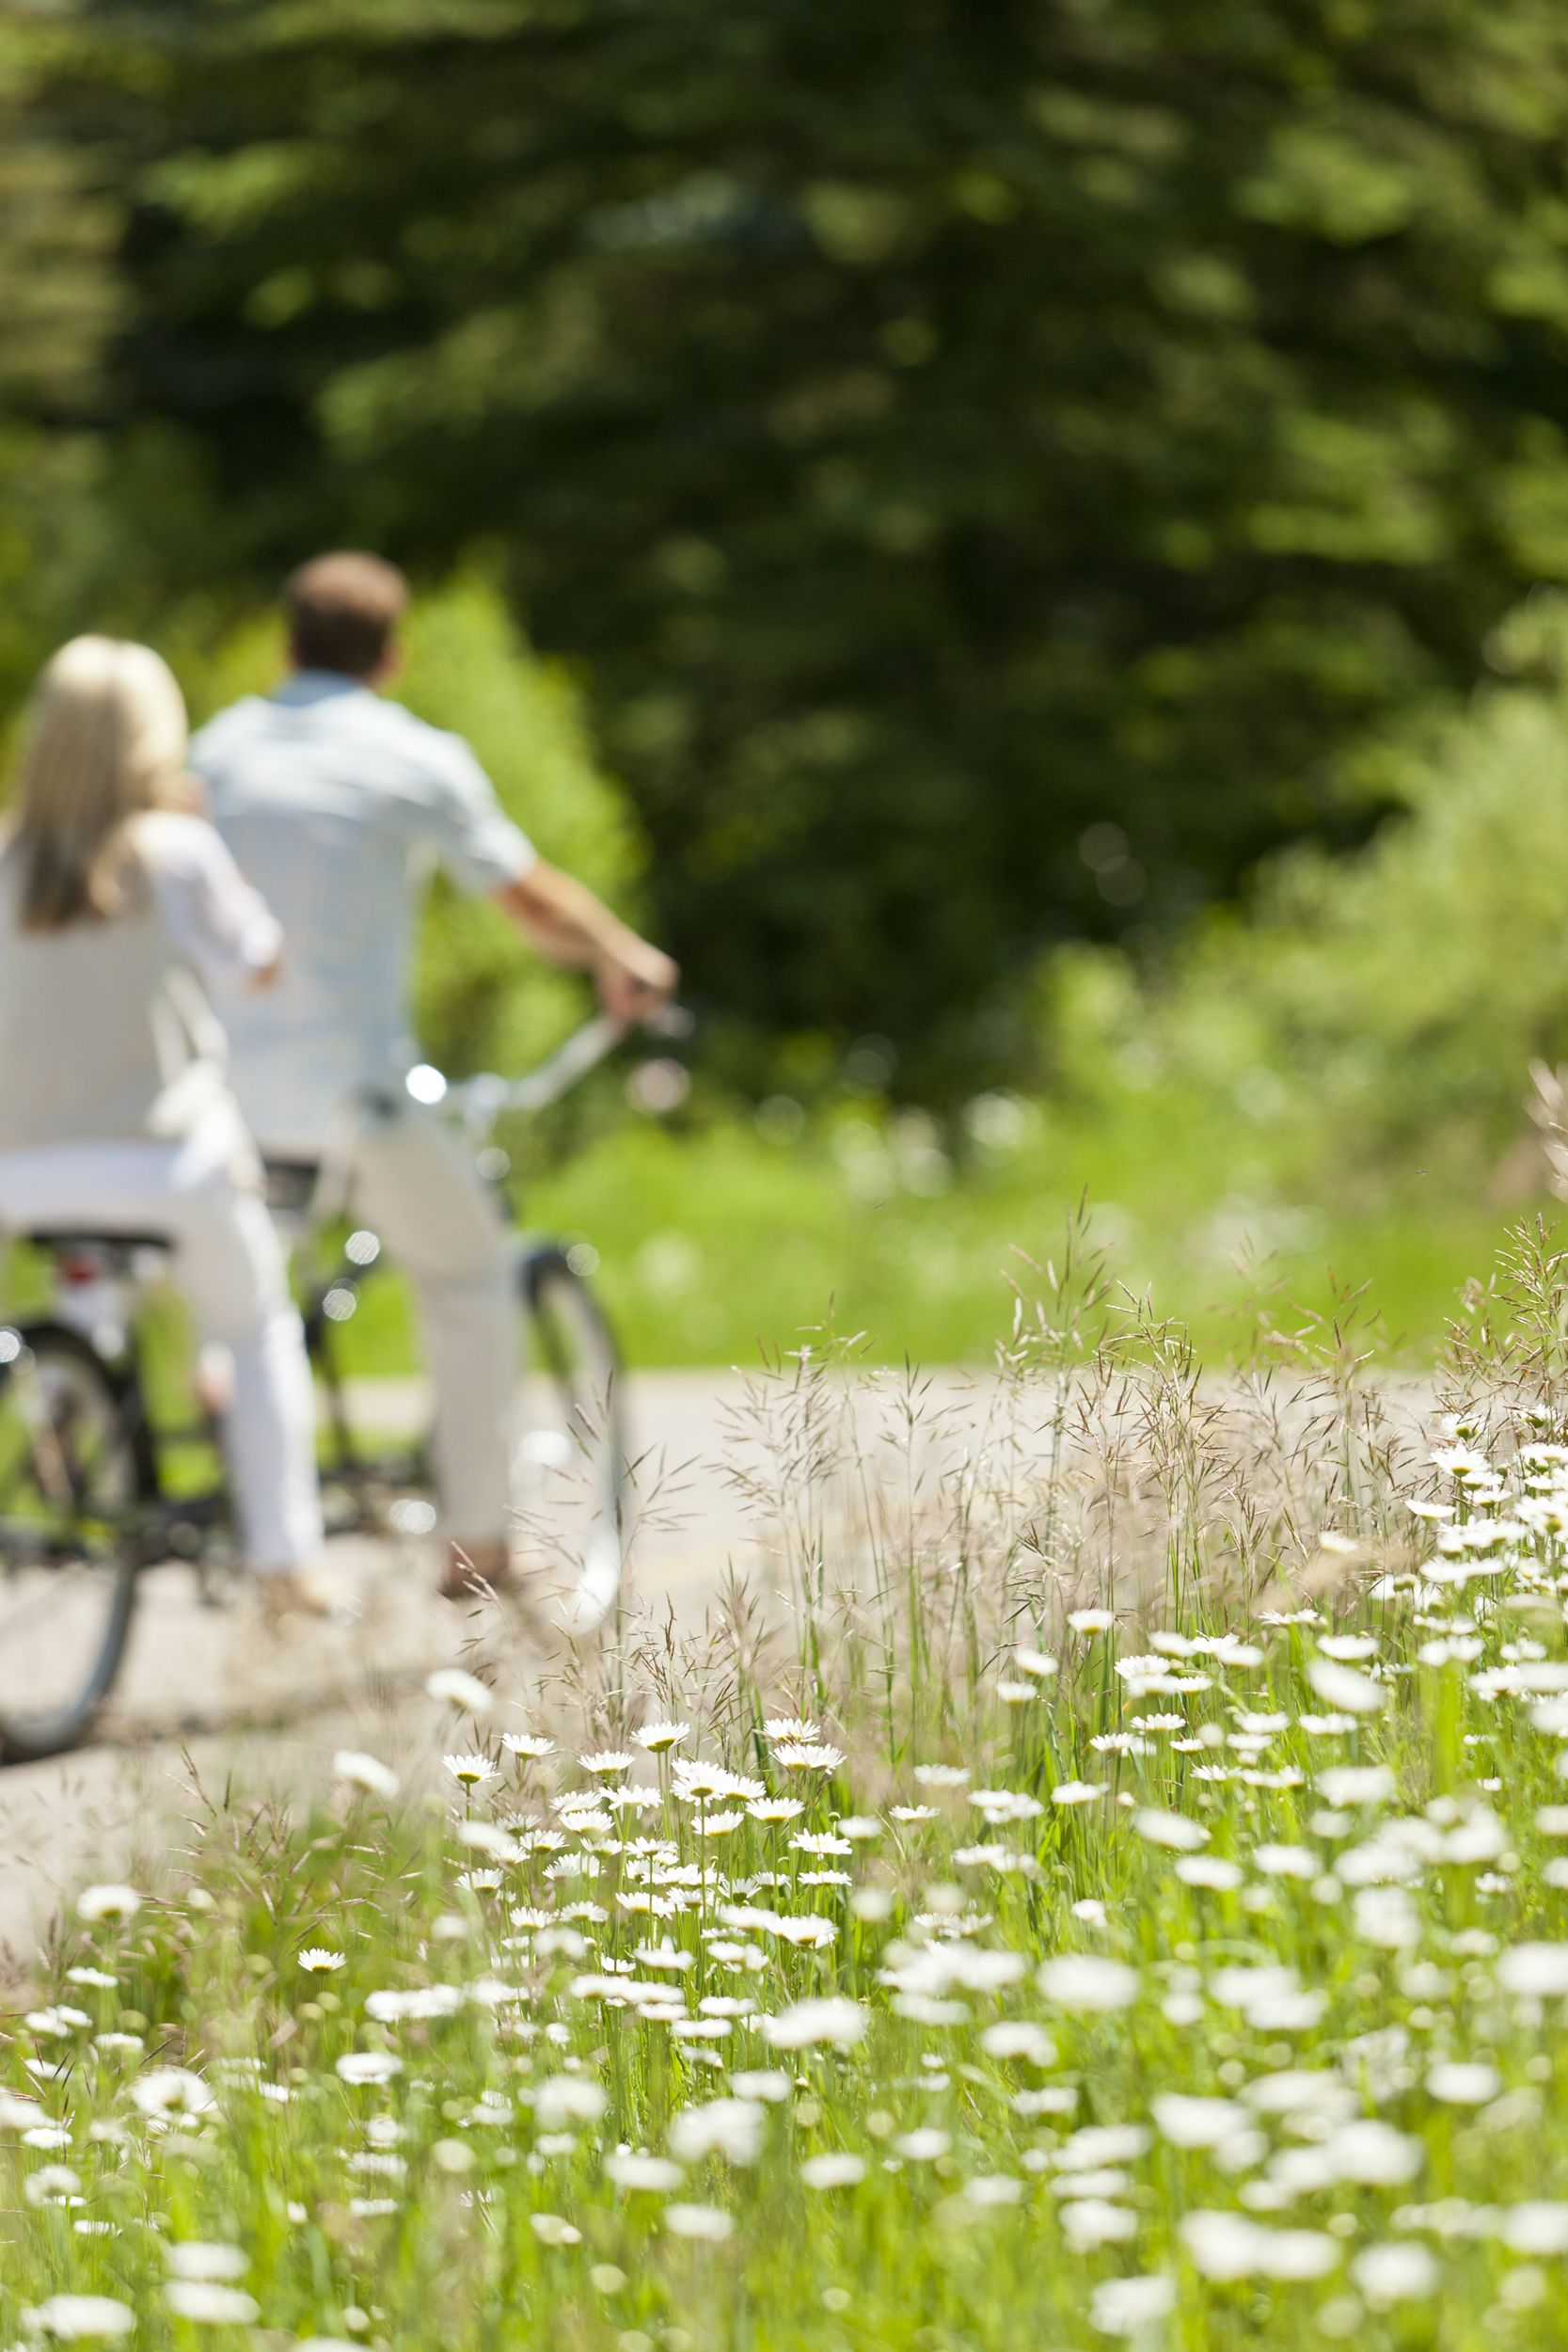 Bicycling amidst the wildflowers is a fun summer activity